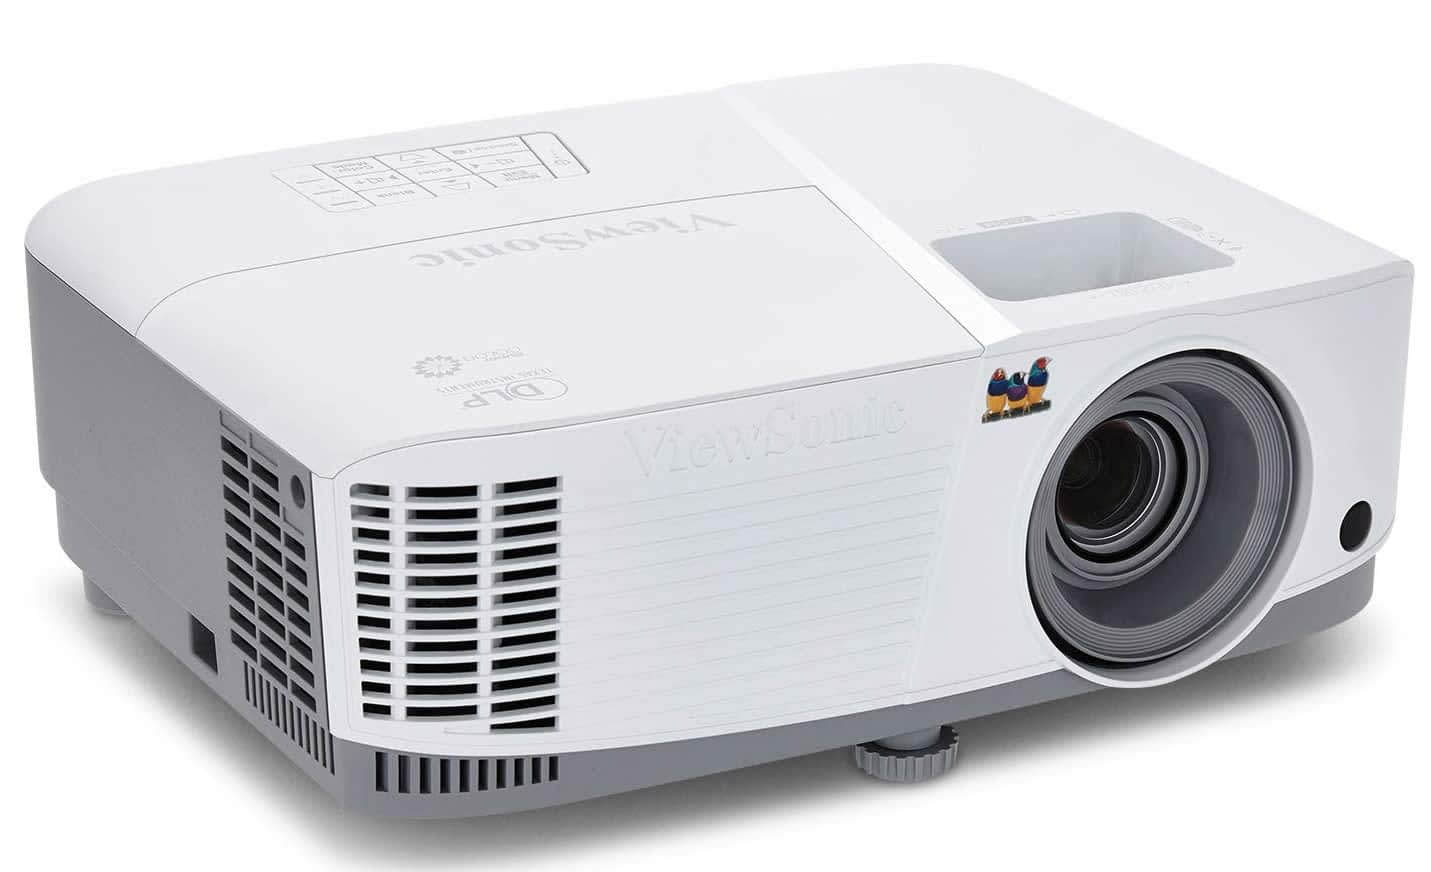 Best Home Theater Projector Under 500 in 2020 - Review 3